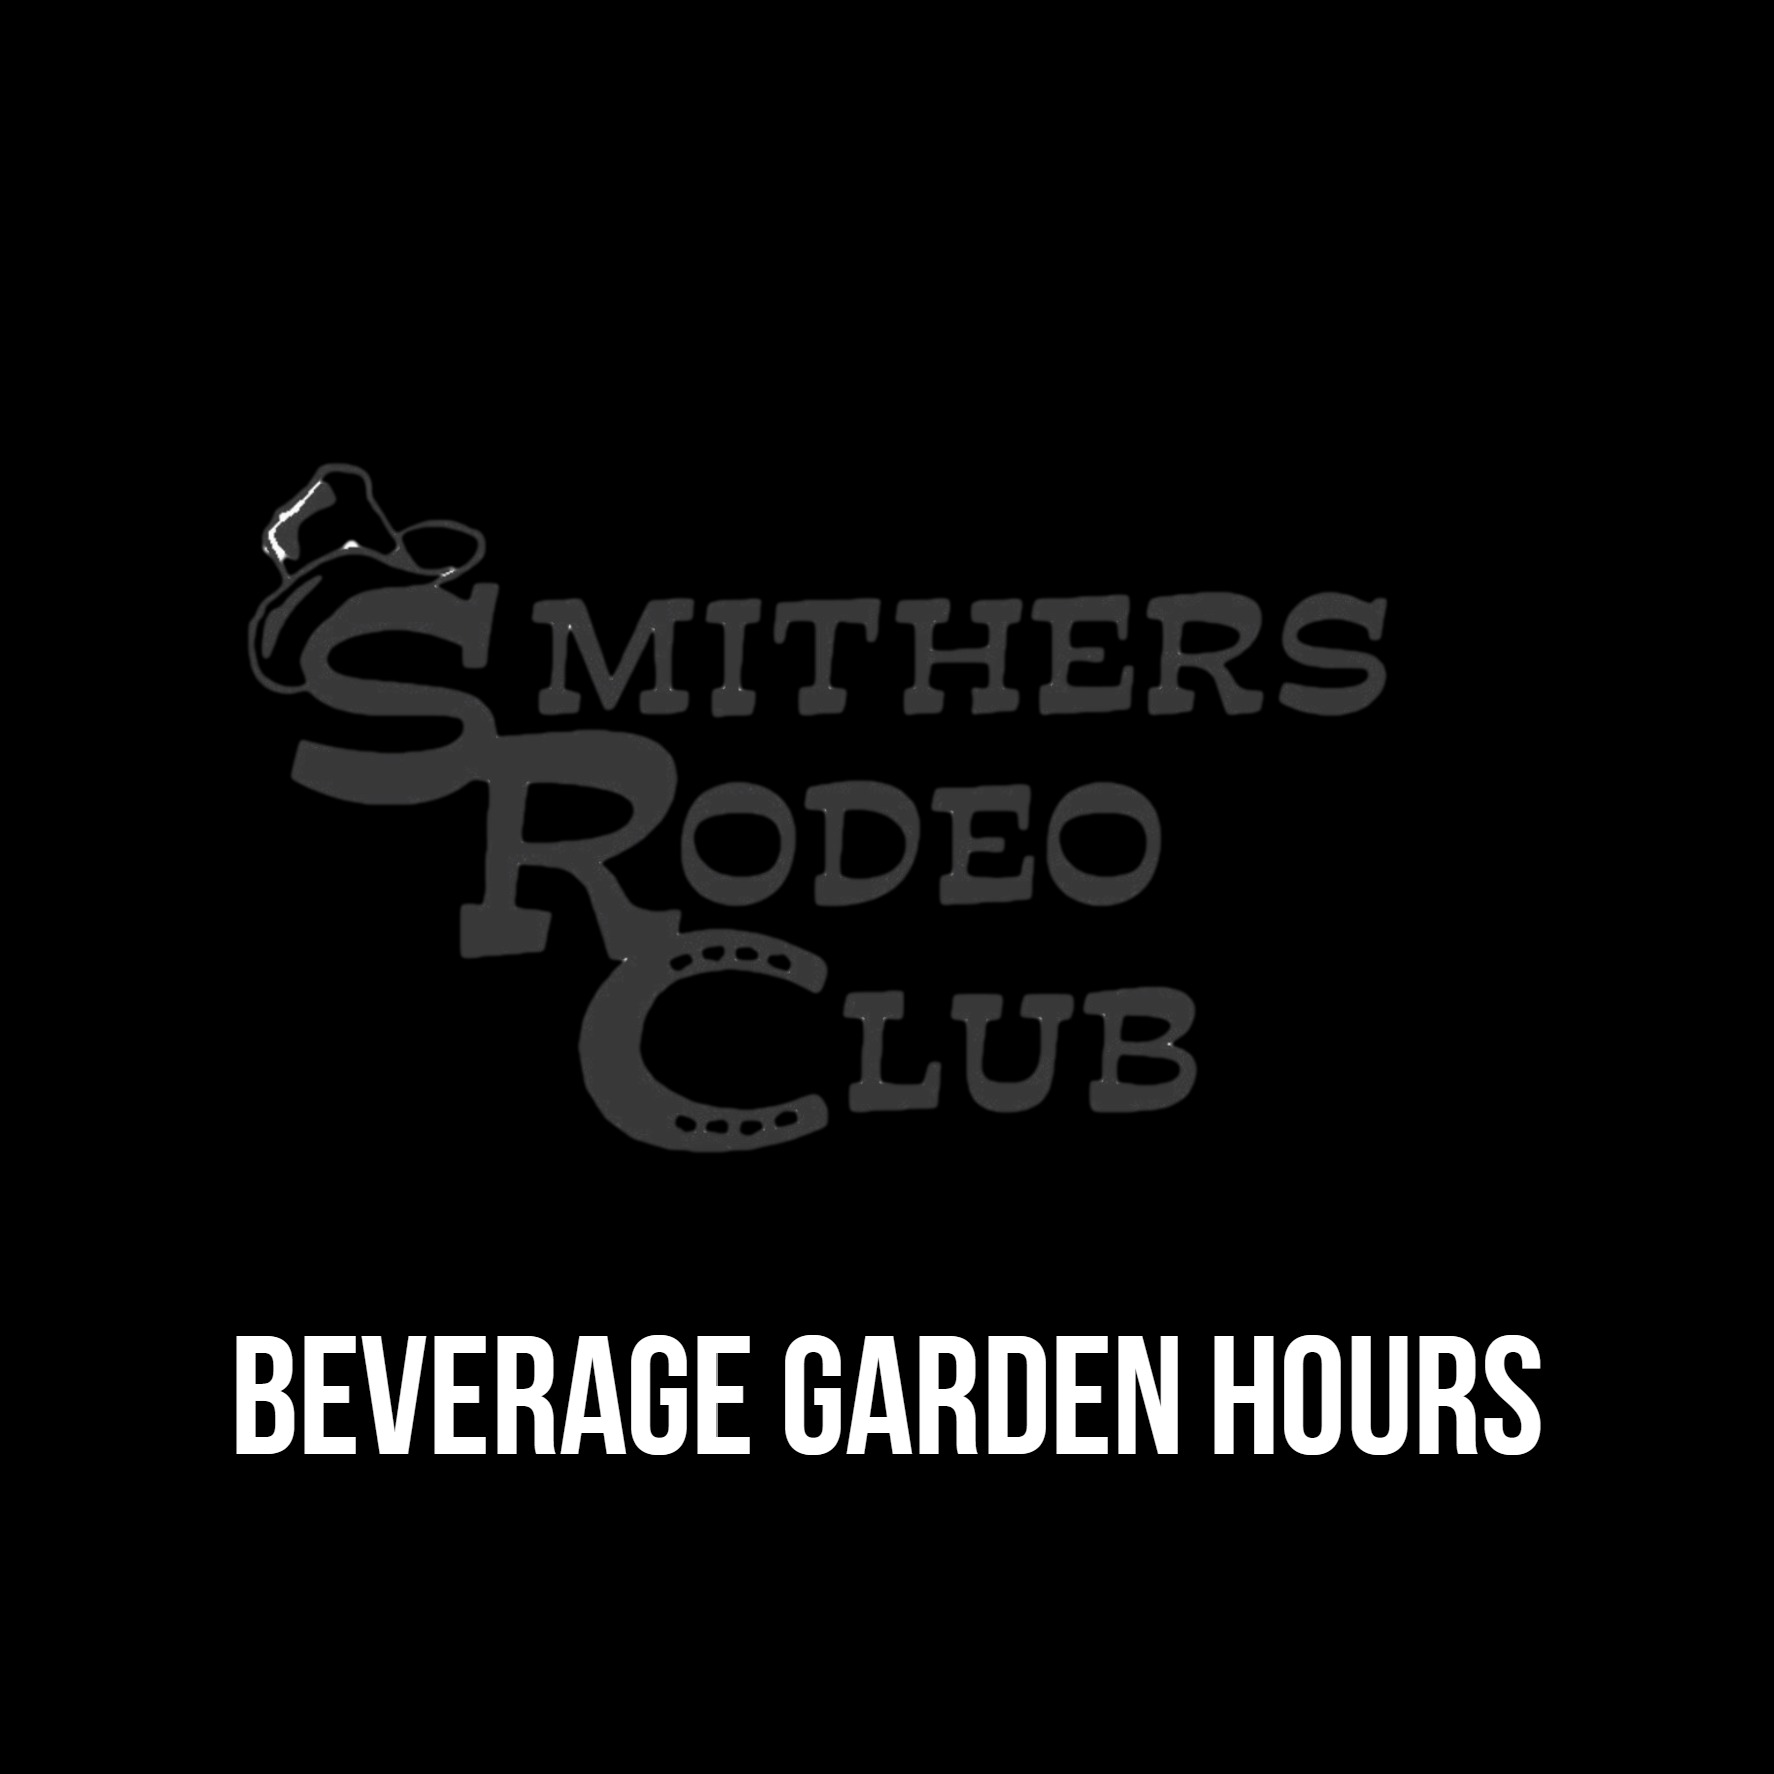 Smithers Rodeo Club Beverage Gardens